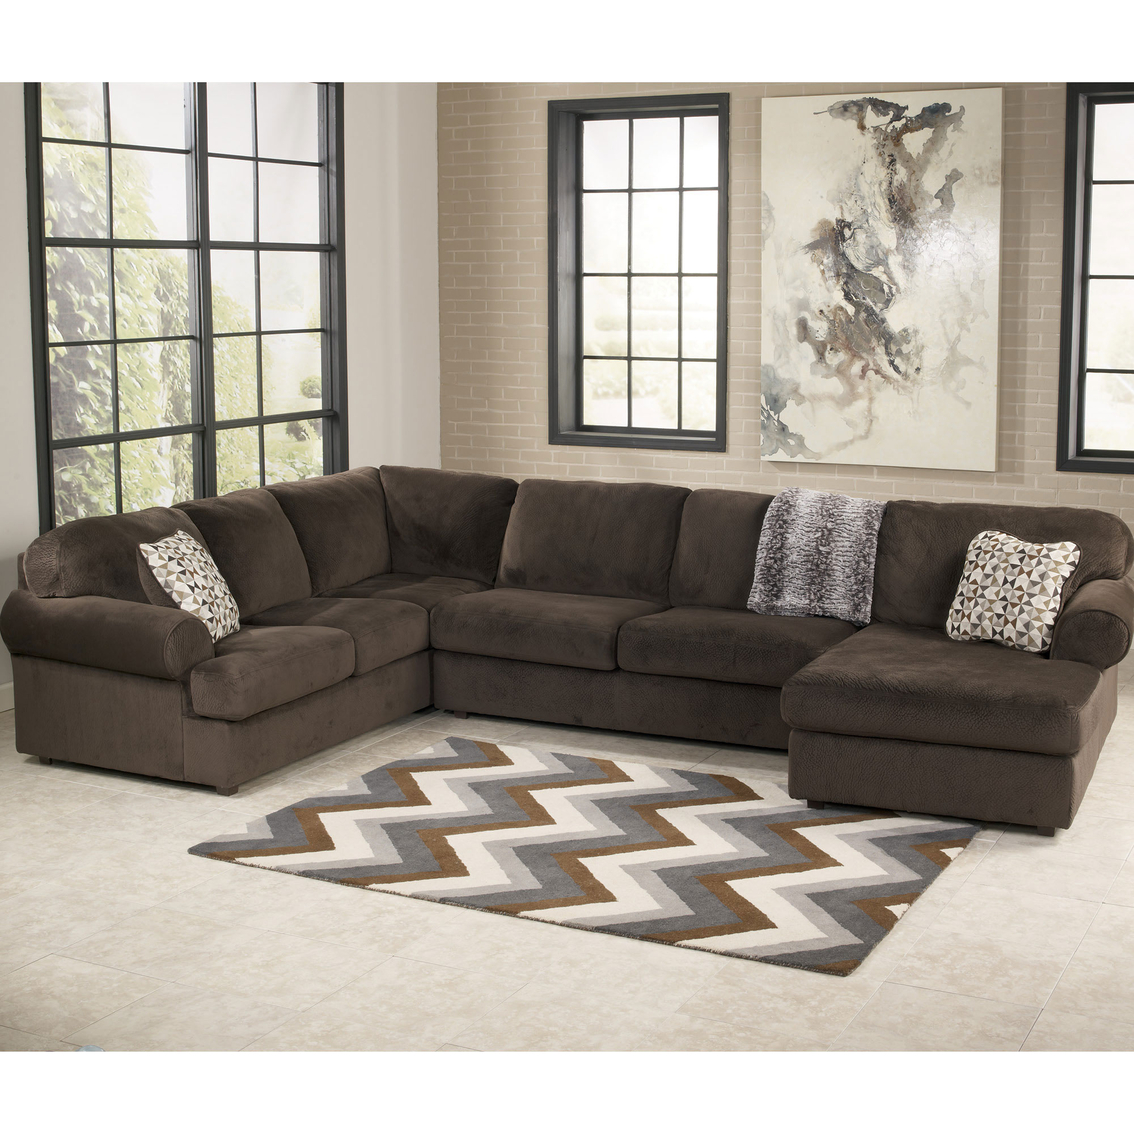 Attrayant Signature Design By Ashley Jessa Place 3 Pc. Sectional Sofa